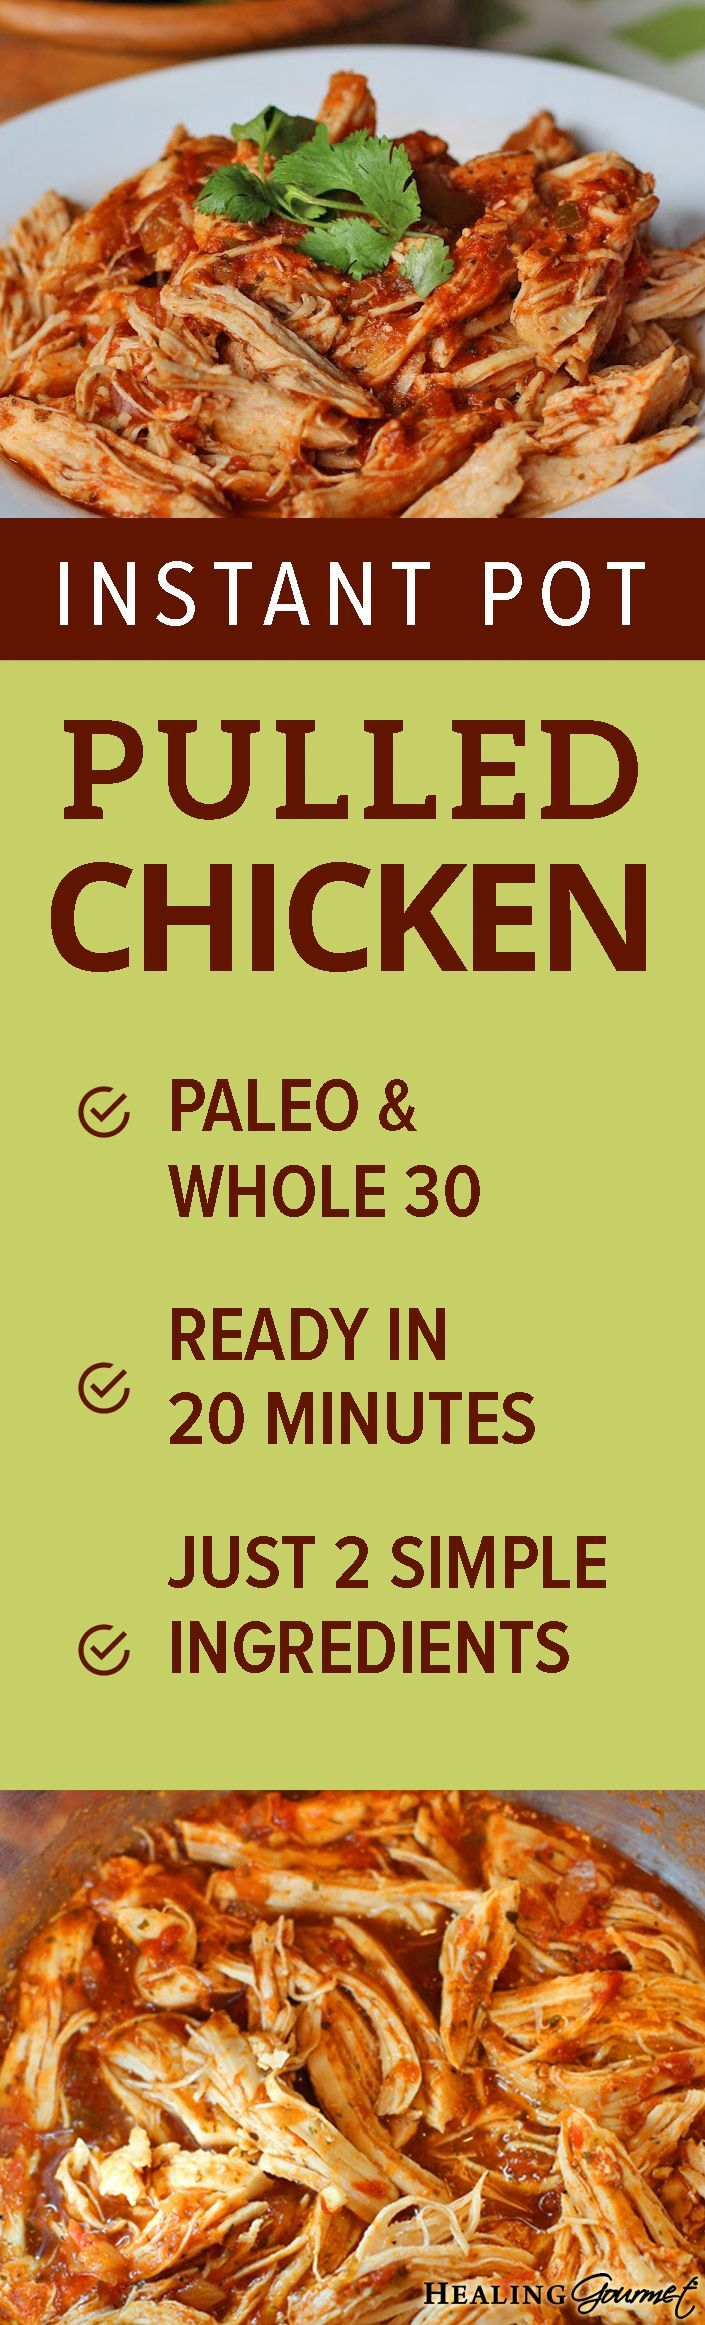 Two-Ingredient Instant Pot Pulled Chicken (in 10 Minutes!)